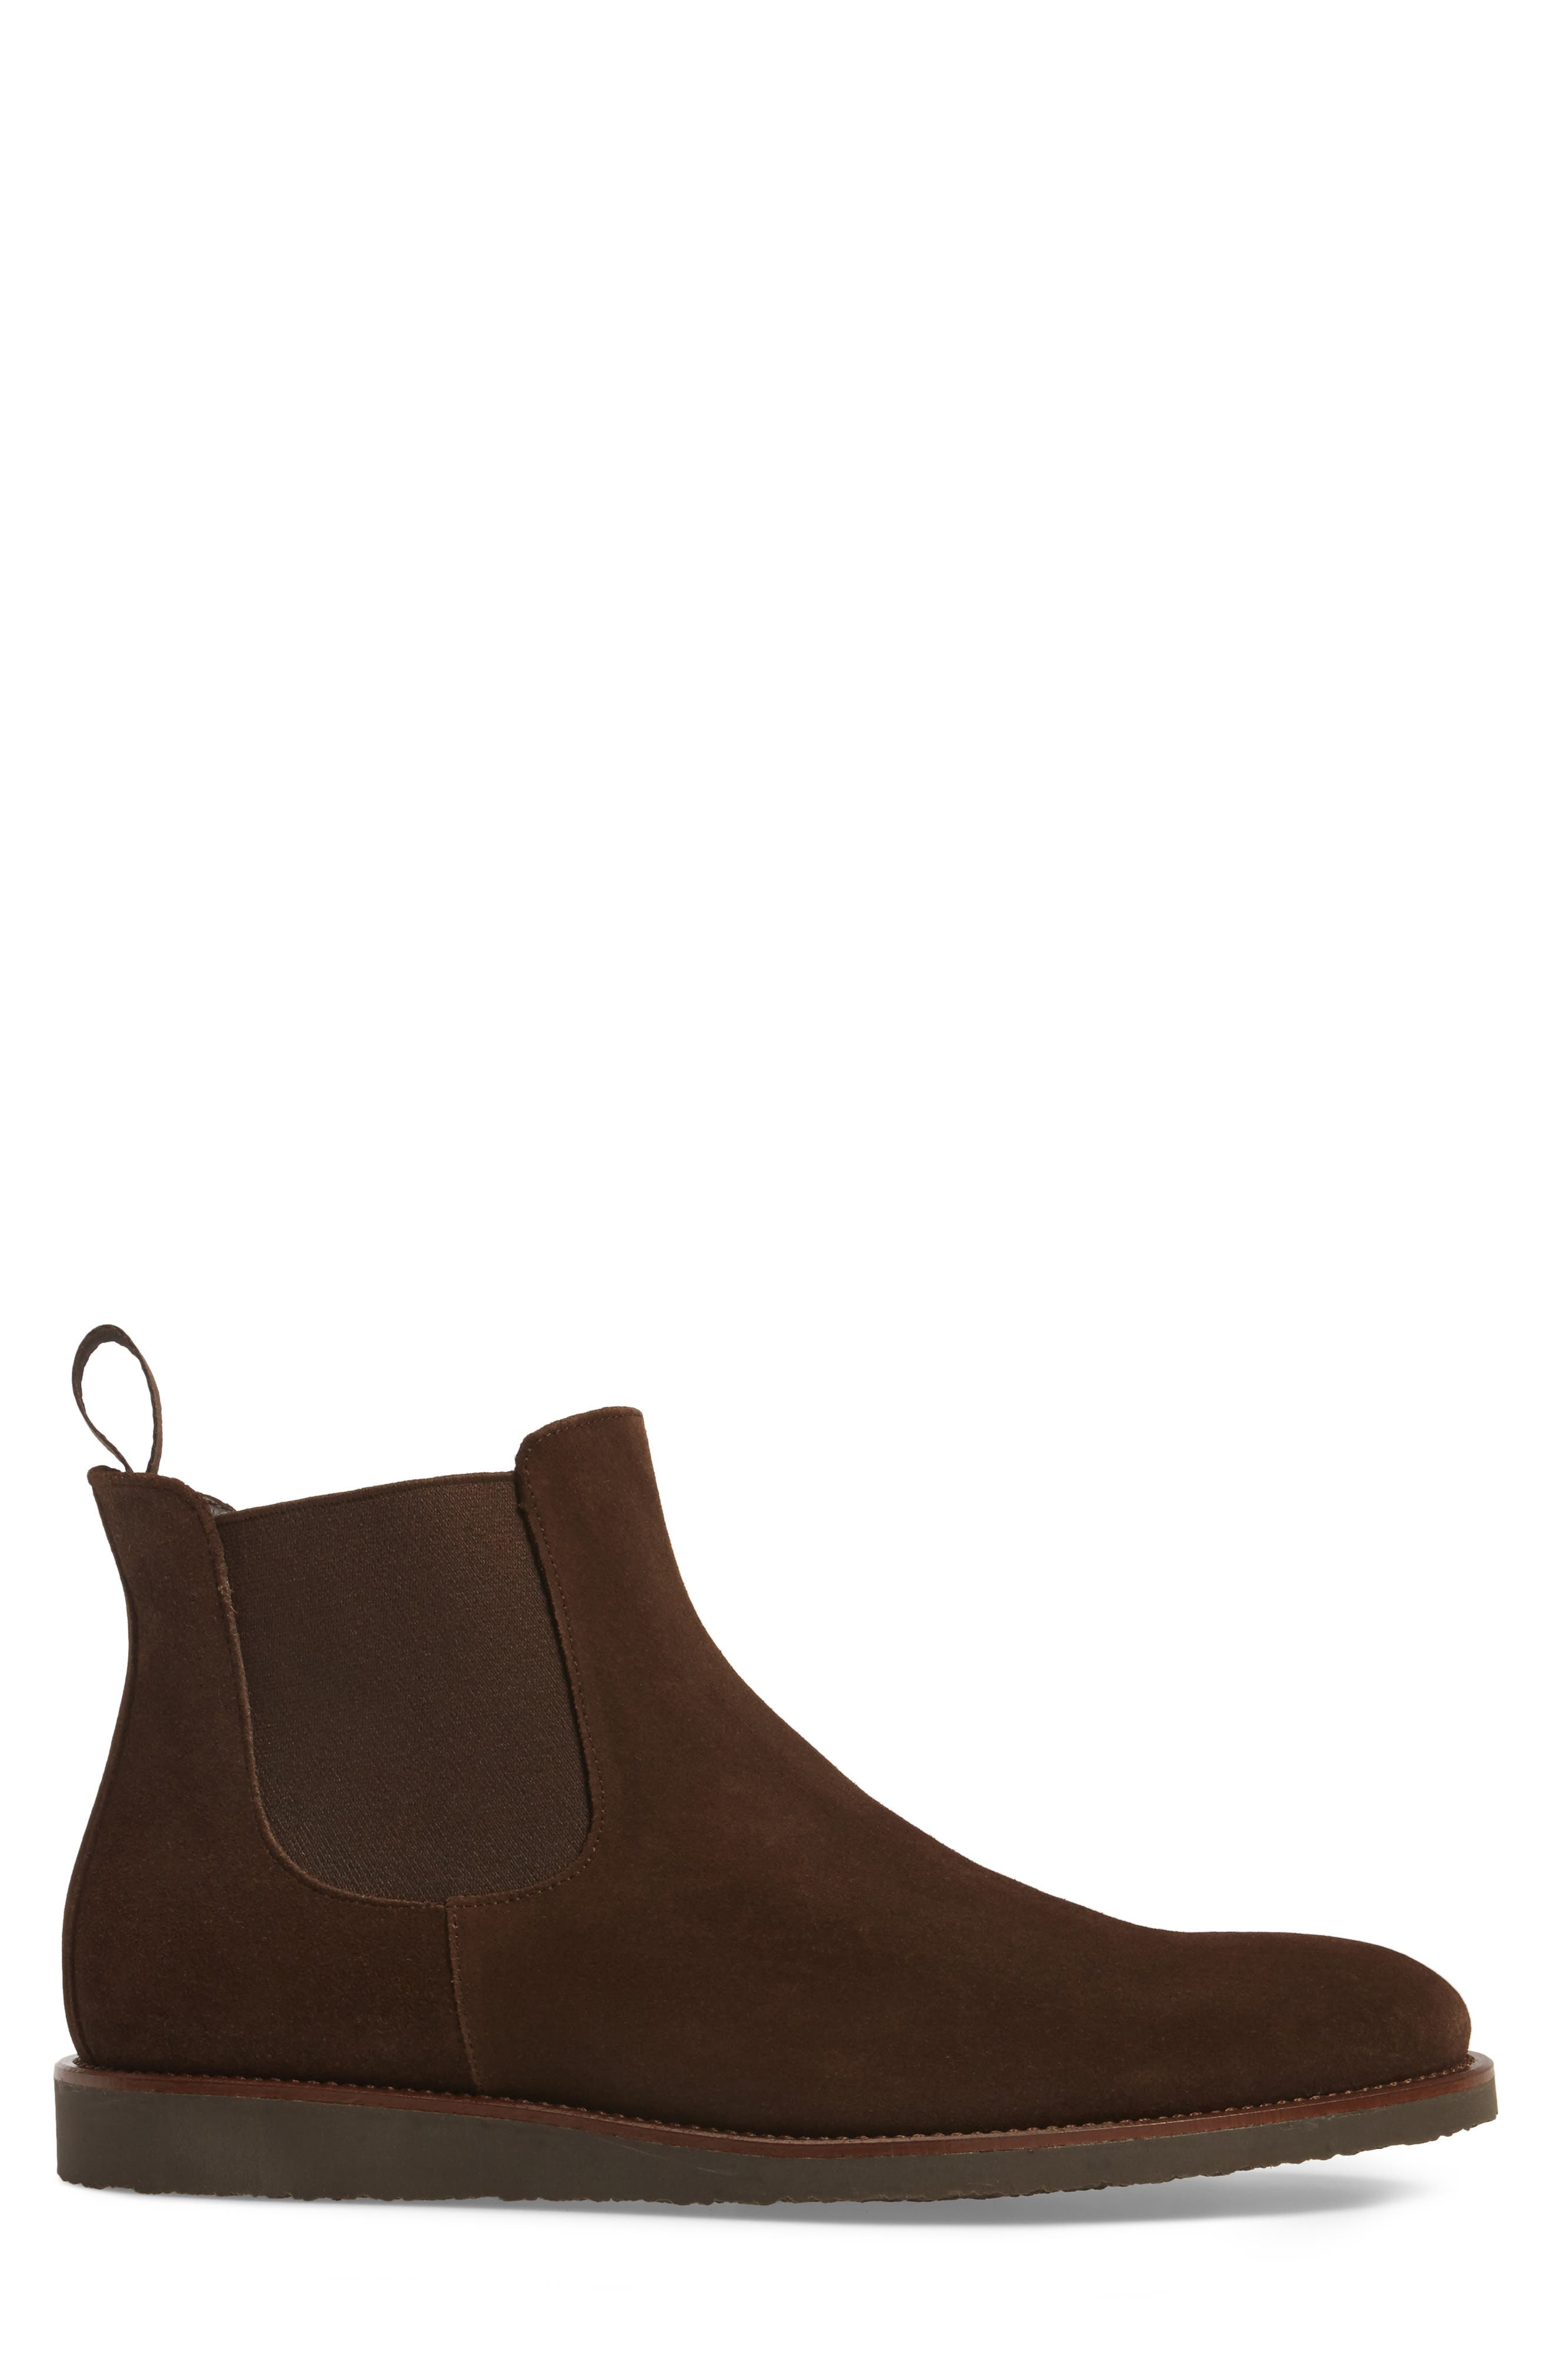 Corden Chelsea Boot,                             Alternate thumbnail 3, color,                             Otterproof Moro